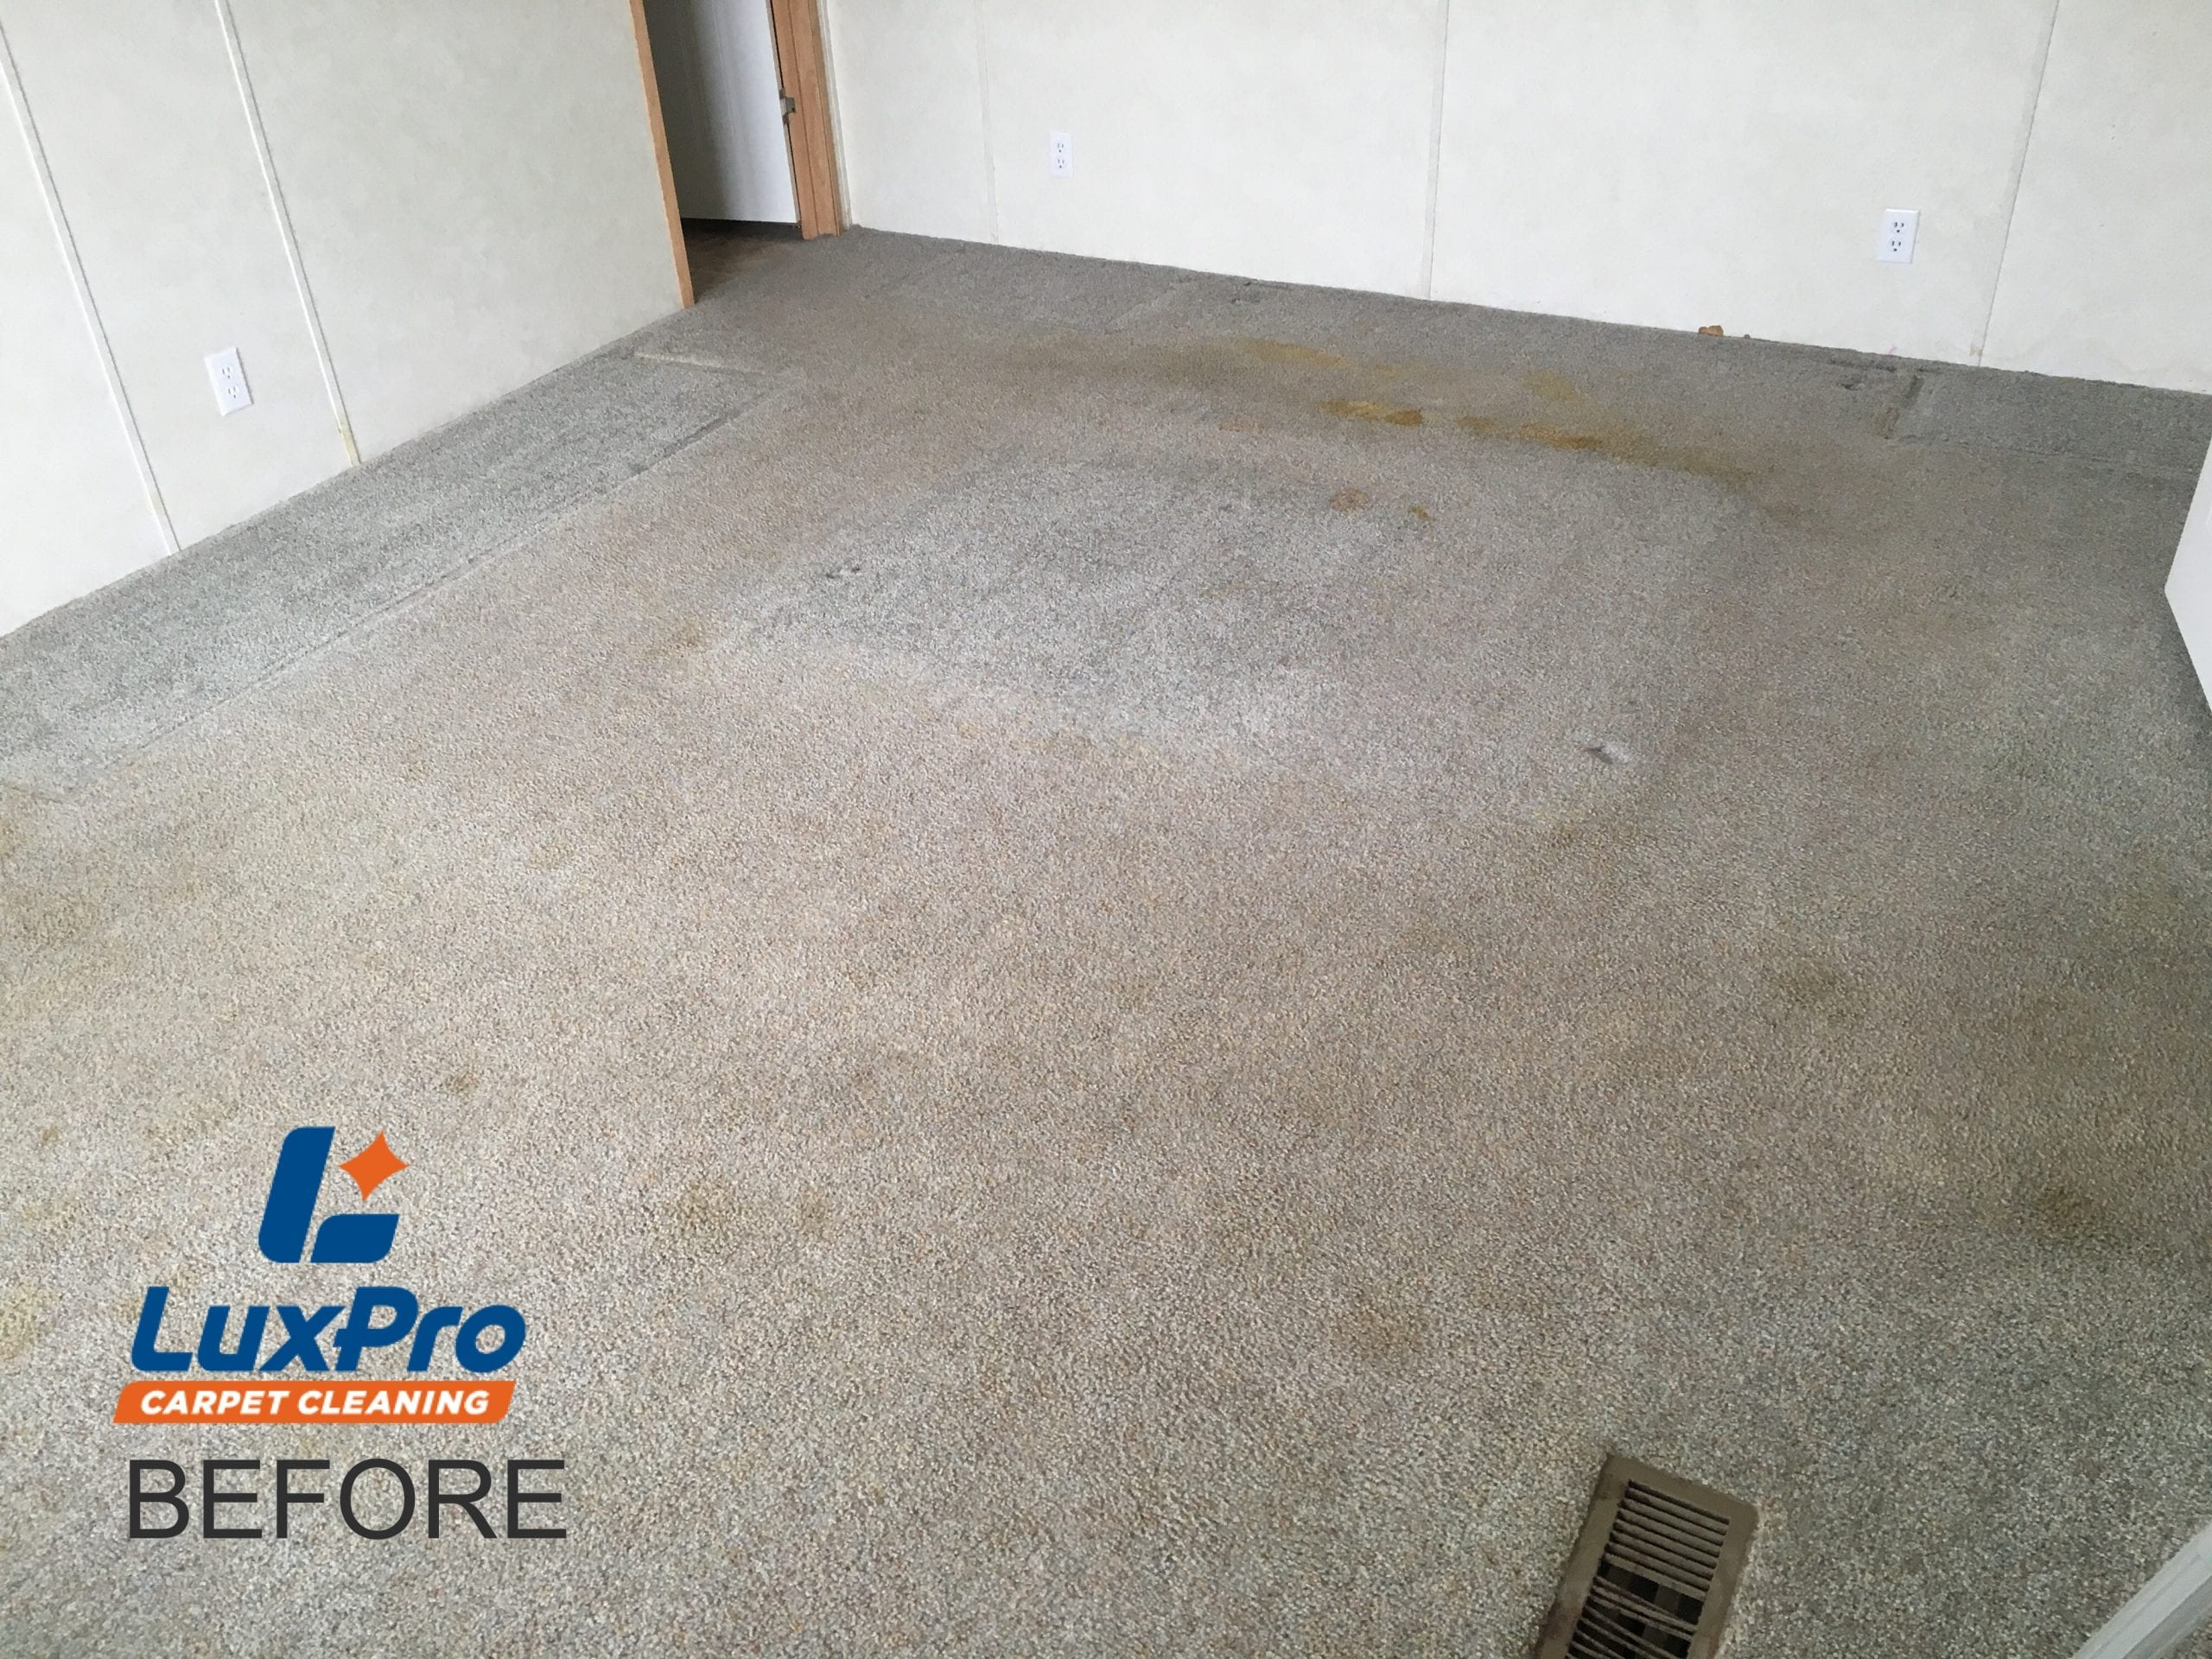 Keeping carpets clean is a very challenging task. Especially if you have kids or pets, always having clean carpets is a steep mountain to climb. To help ease the stress, pick up the phone and call LuxPro Carpet Cleaning today! We take pride in being the #1 carpet cleaning provider in the Niota, TN area. We have two convenient locations in Niota and Cleveland, but we are happy to serve the entire surrounding area. Whether you need residential or commercial carpet cleaning services, our team is standing by, ready to help!